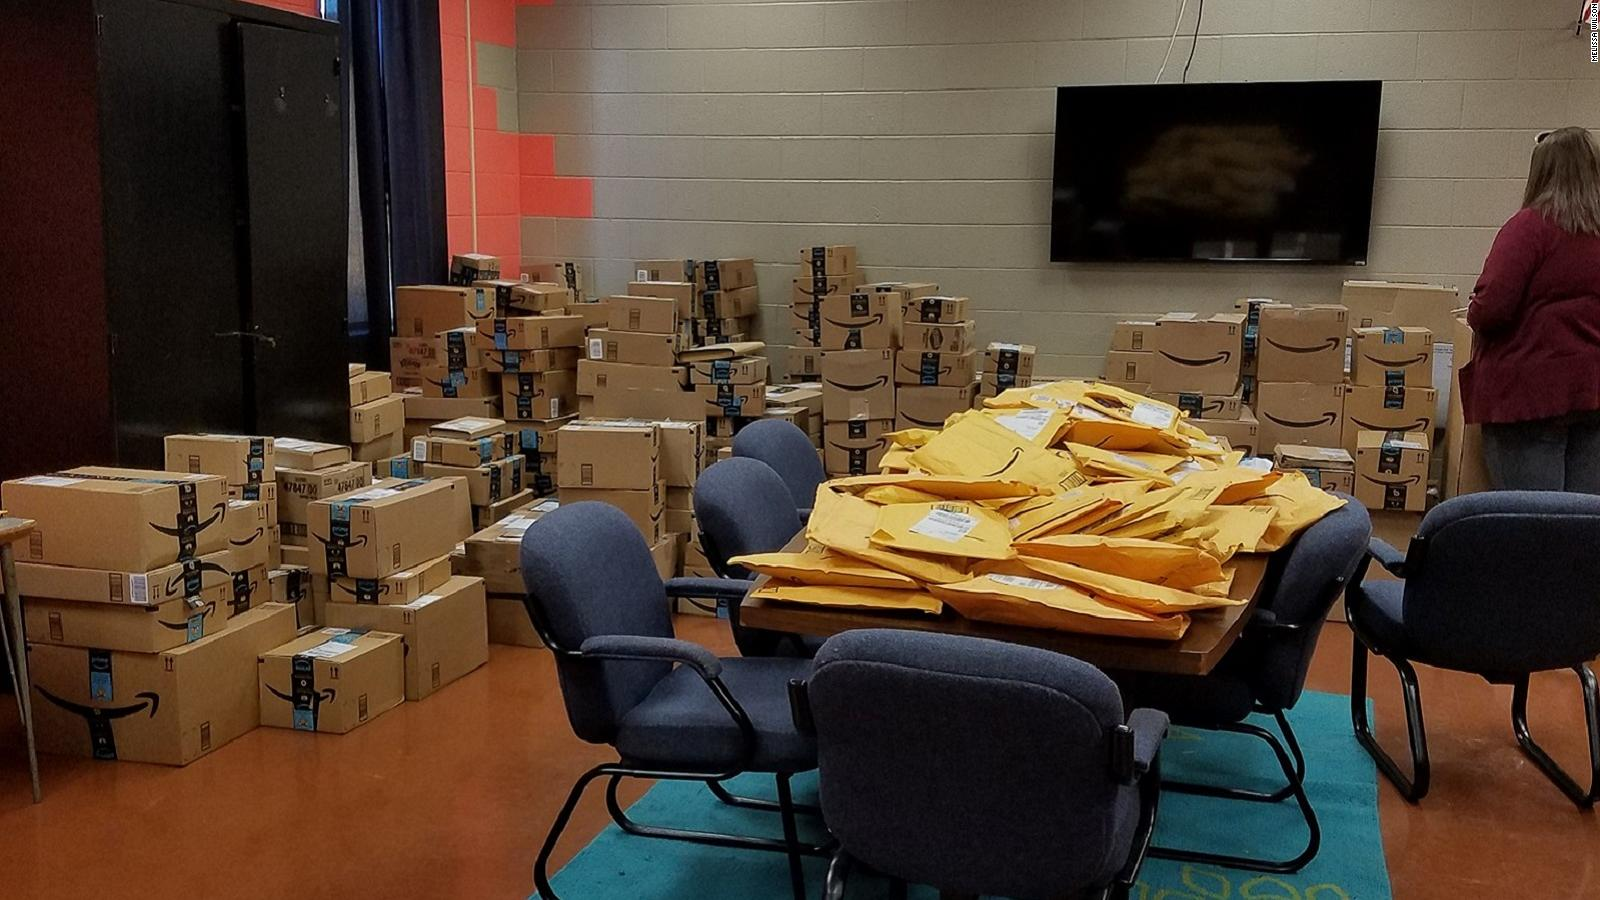 Oklahoma Teacher Is Swamped With Donations After Posting Pictures Of Her Battered Clroom Equipment Cnn